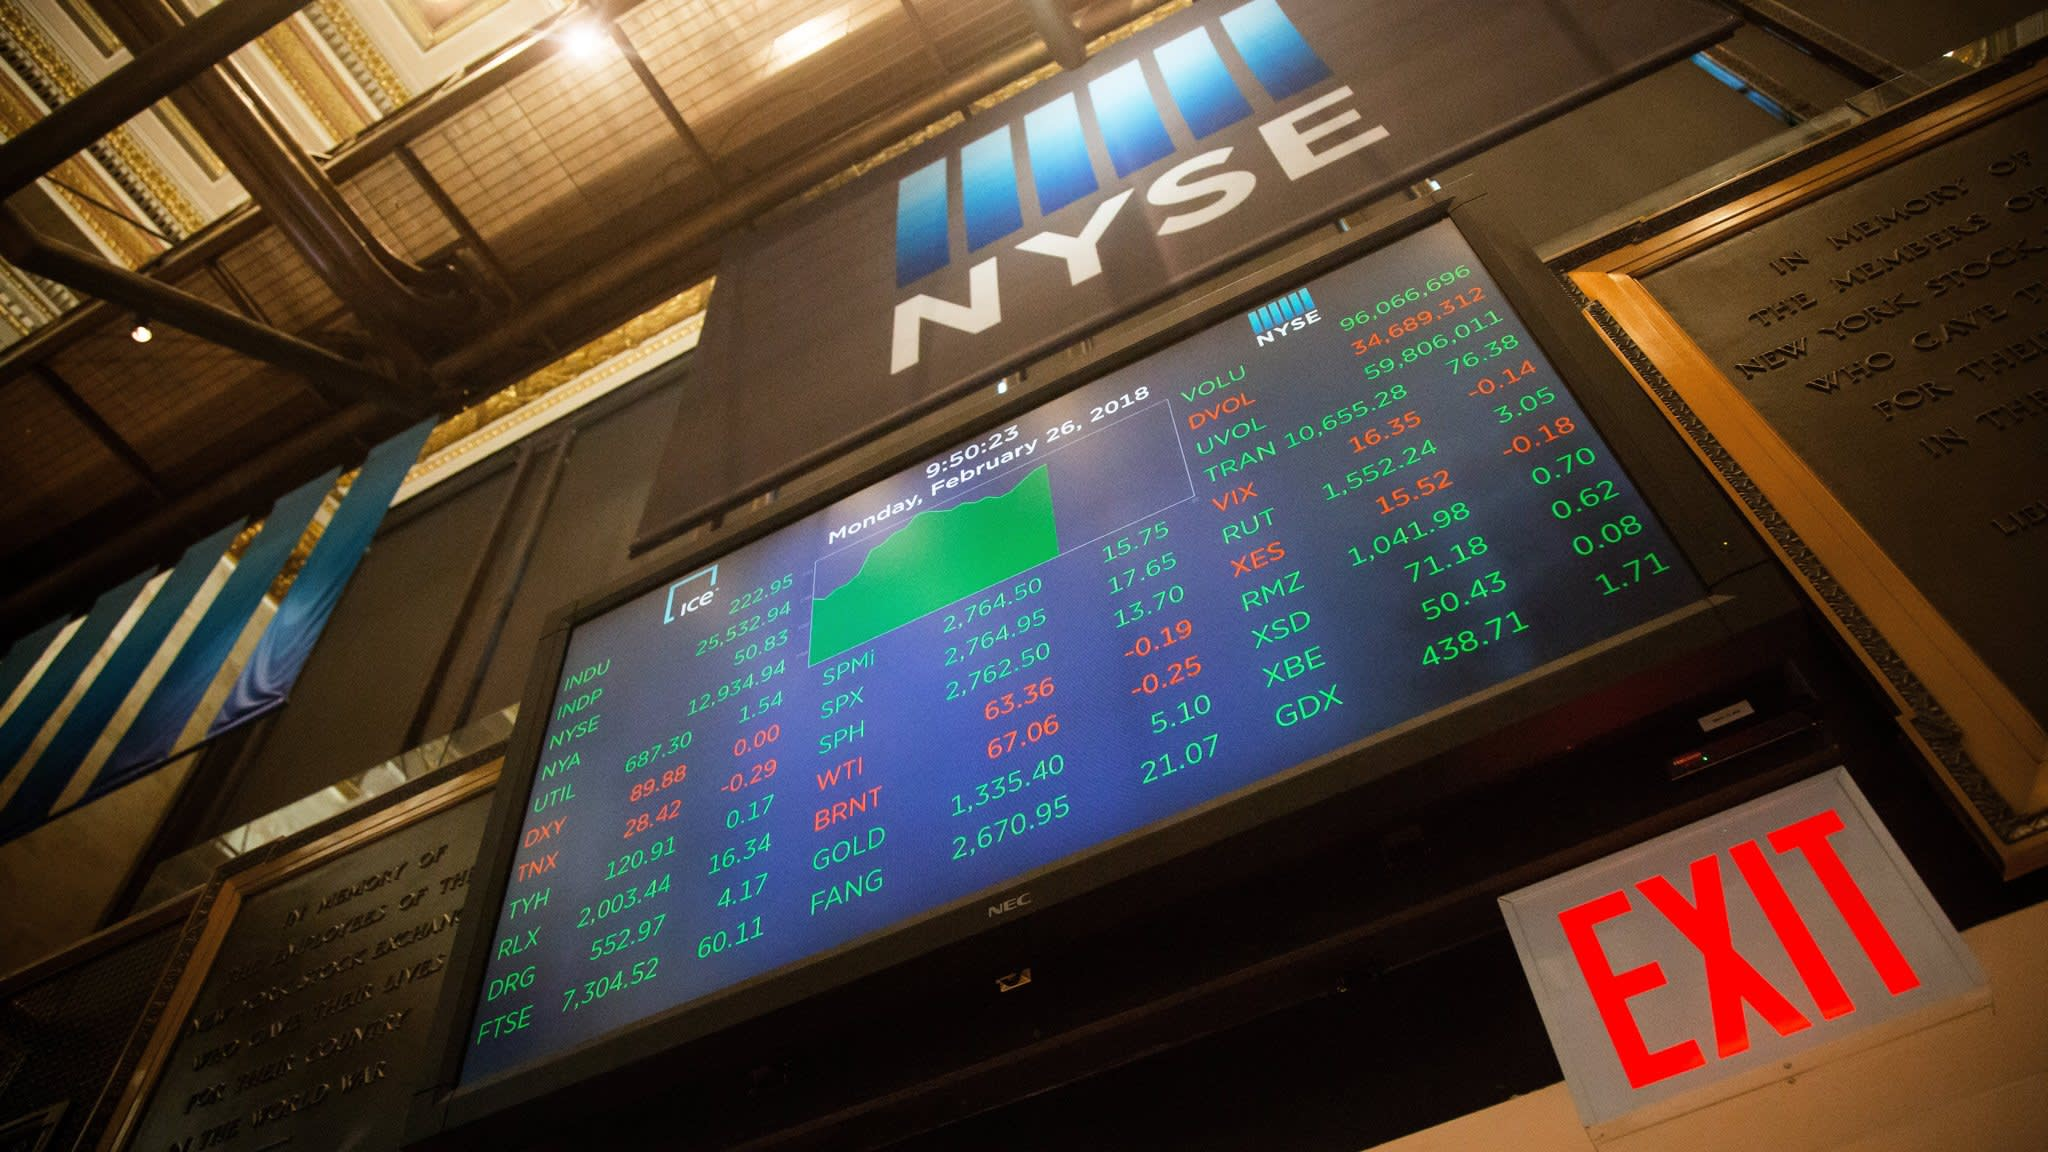 Stocks hit by fears over White House economic policy